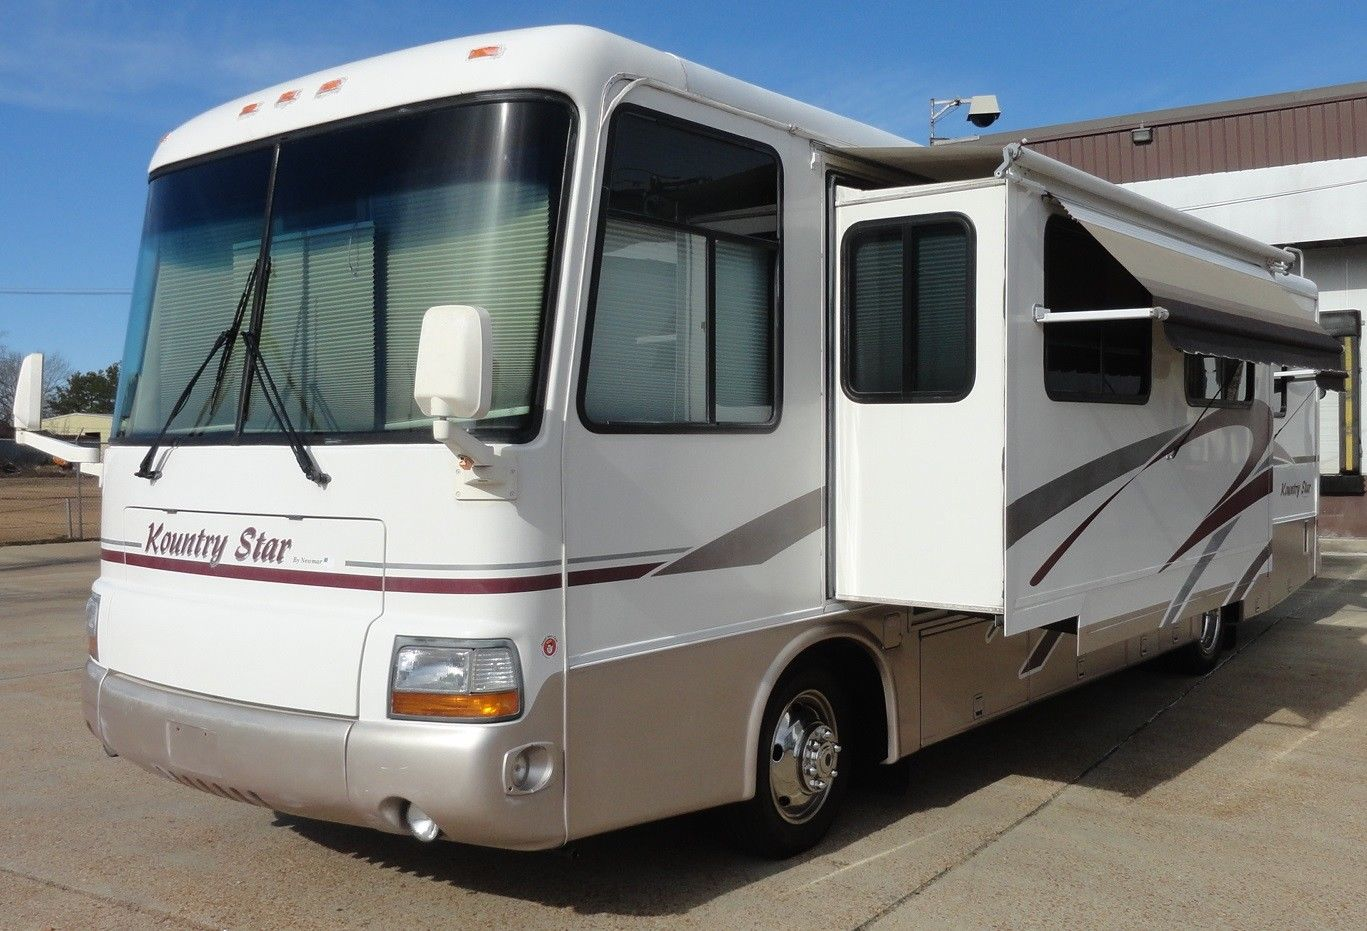 5 awnings 2000 Newmar Kountry Star camper for sale